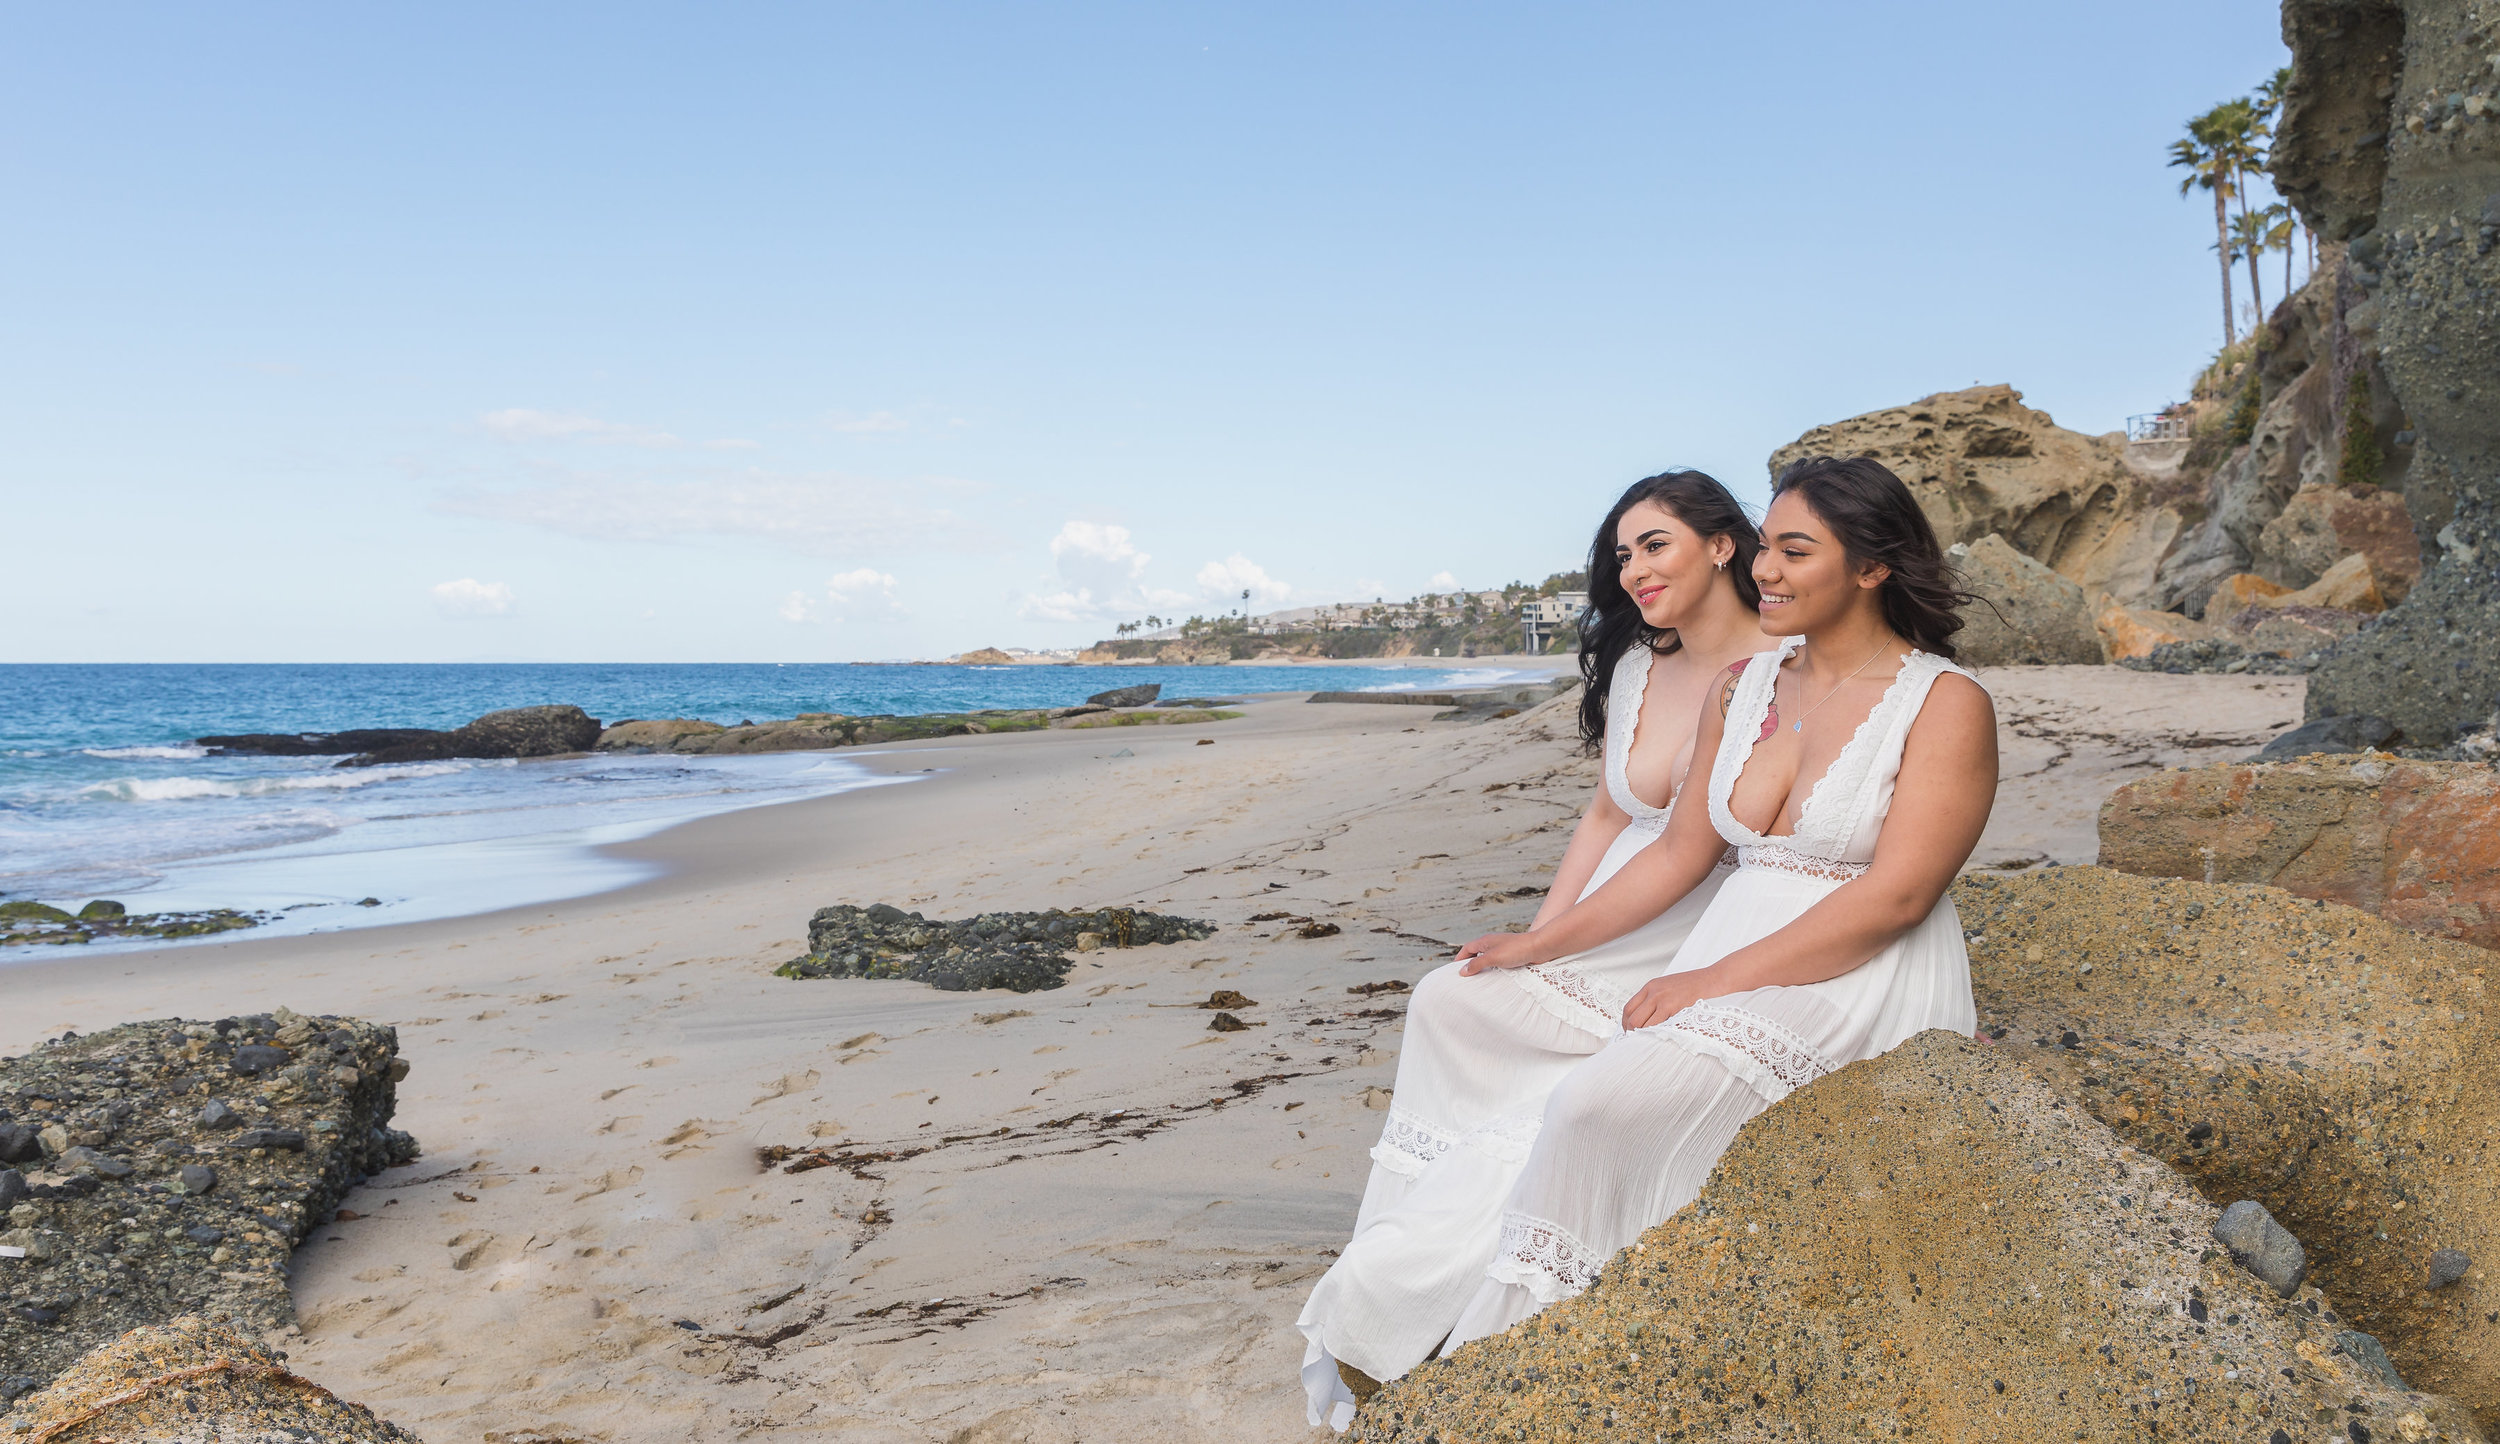 Two Women in White Dress Sitting on the Beach for Engagement Photo Session.jpg